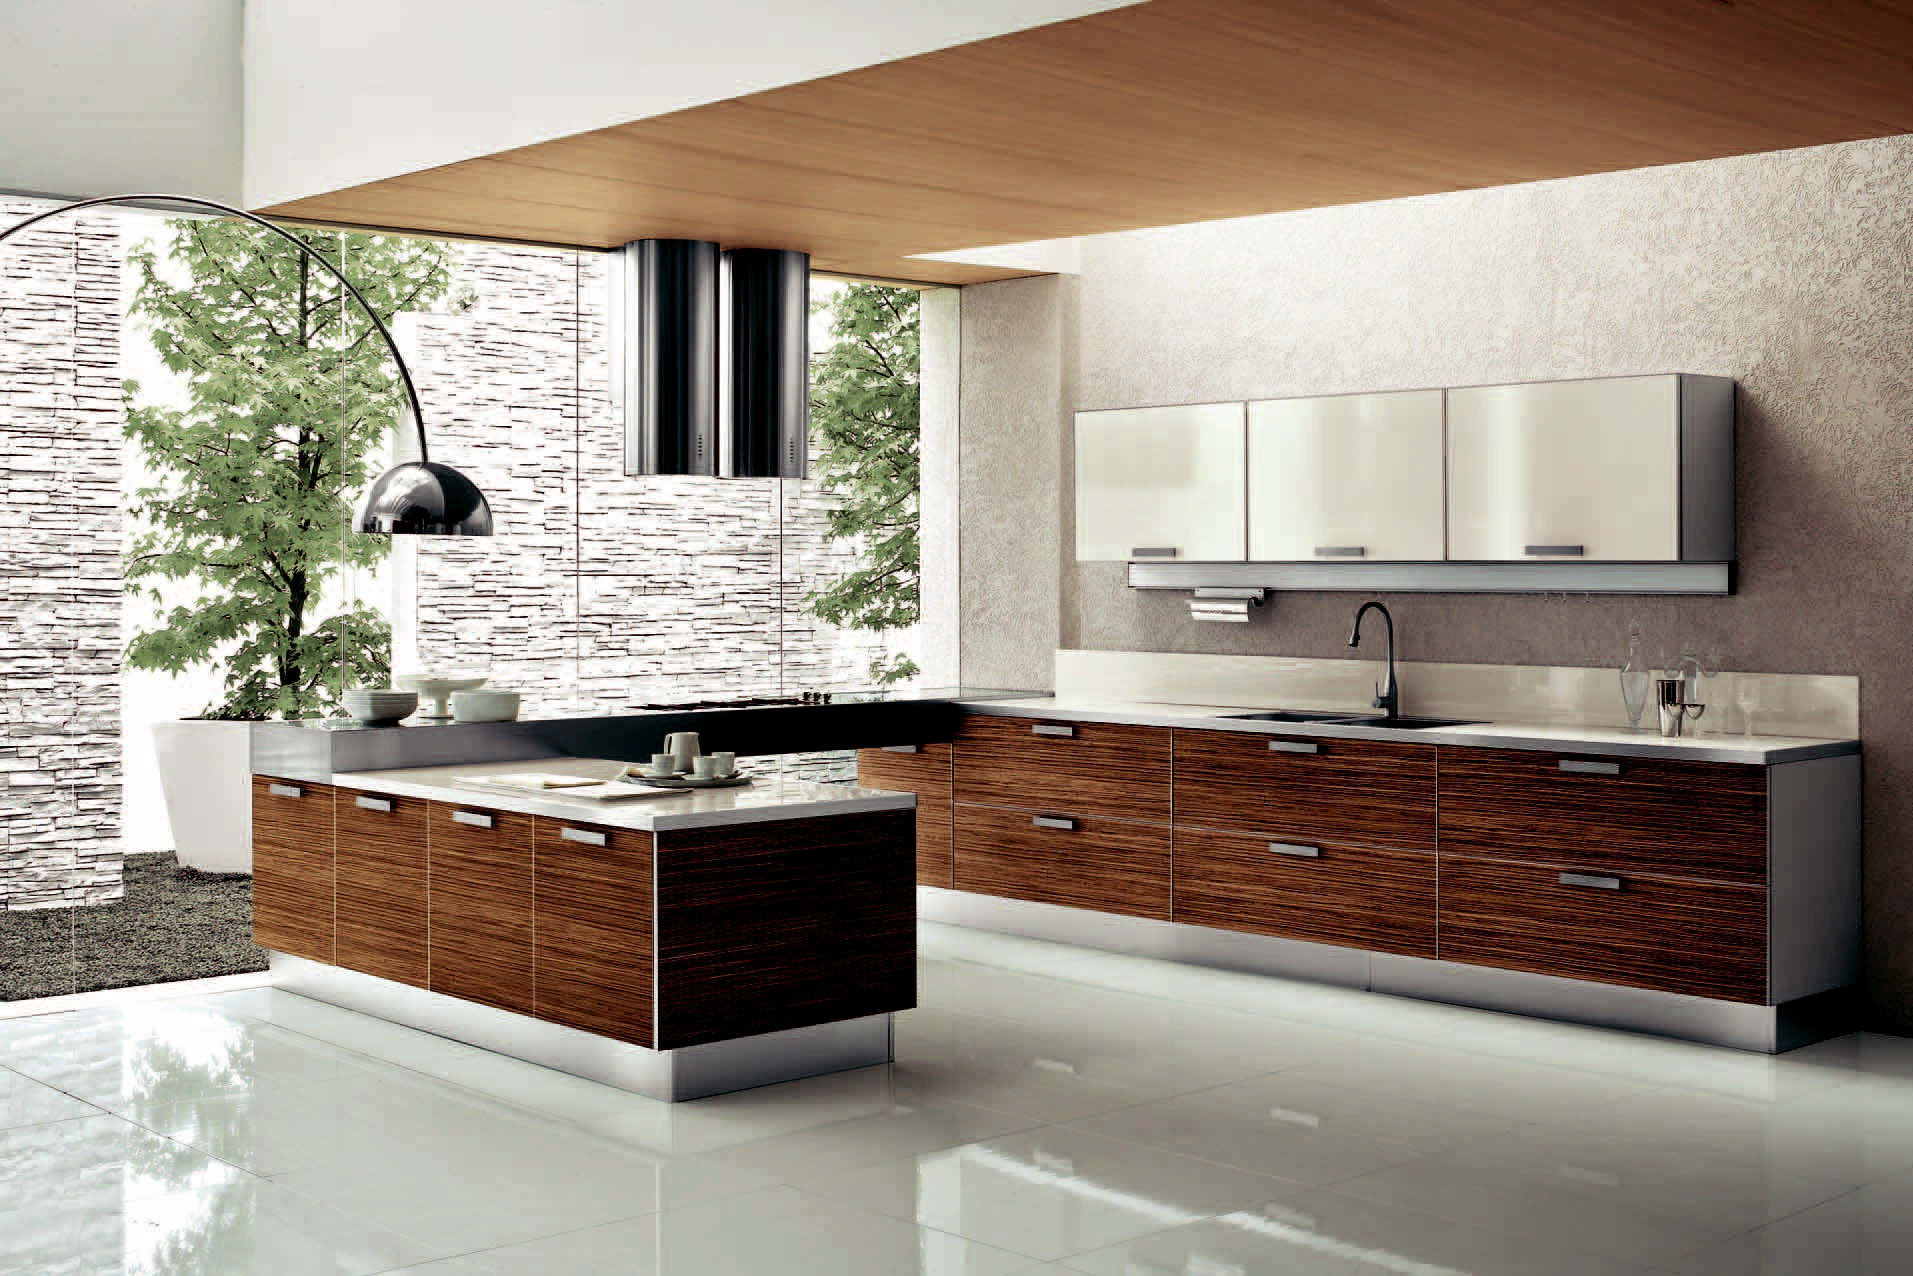 Beyond kitchens kitchen cupboards cape town kitchens for New kitchen designs